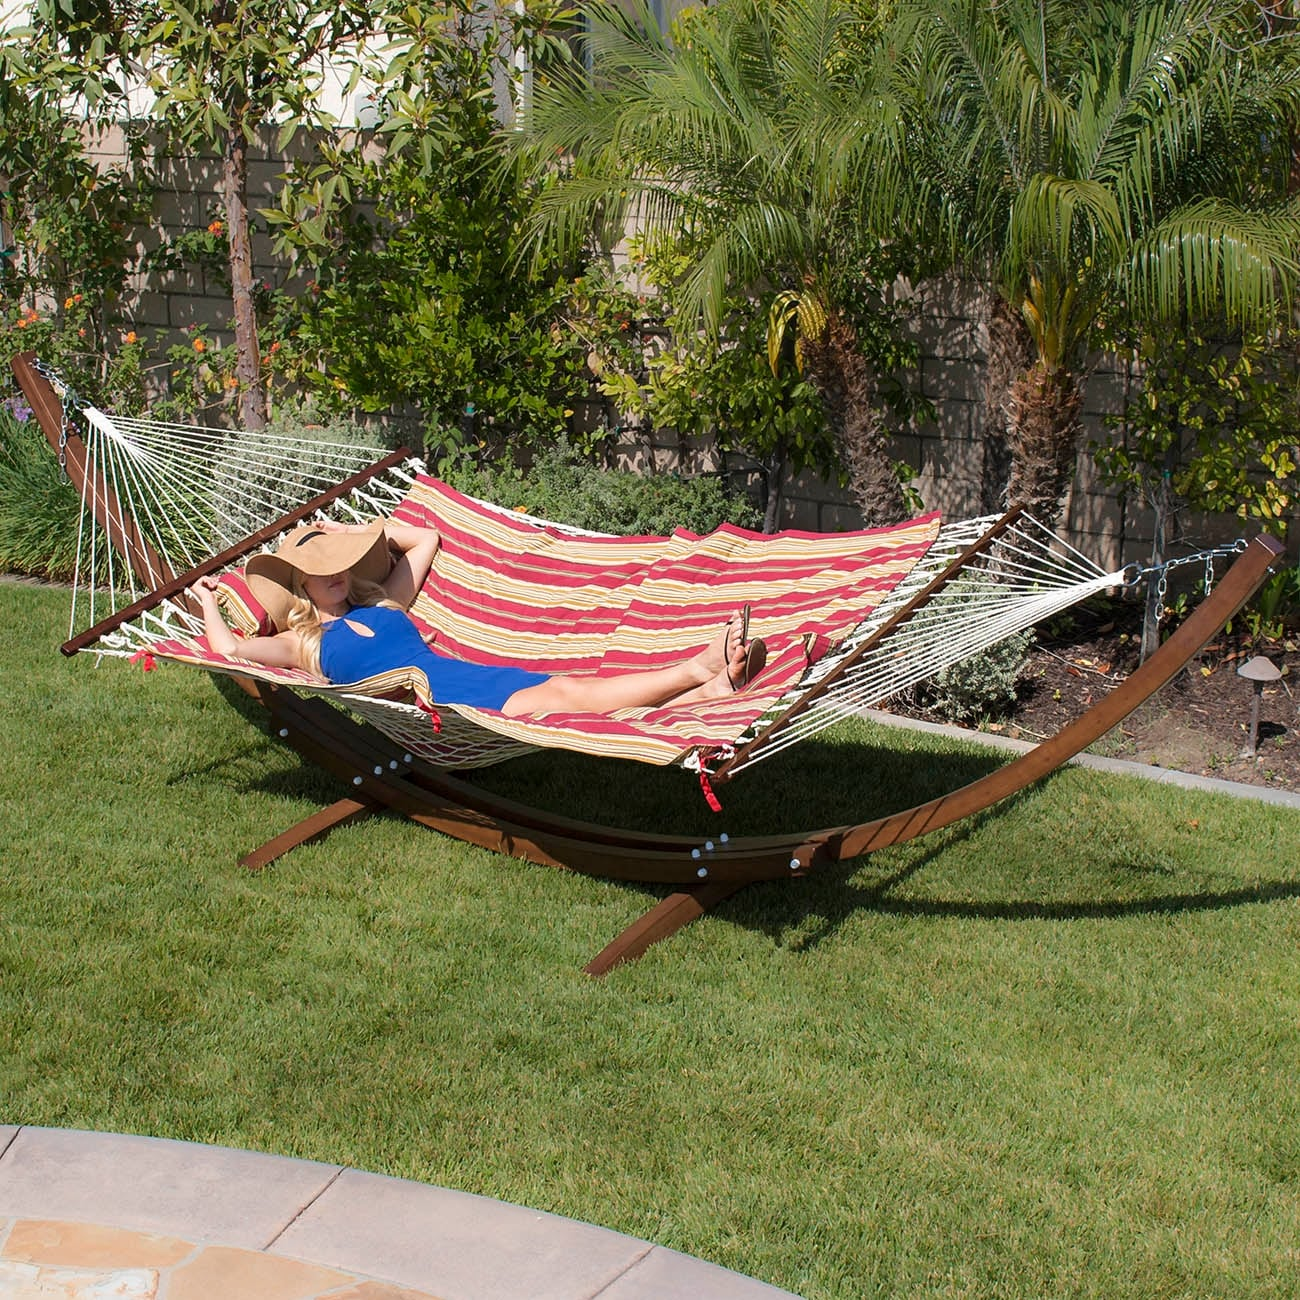 hammock swing kd solid sunshade stand roof product canopy with on design wooden garden buy detail